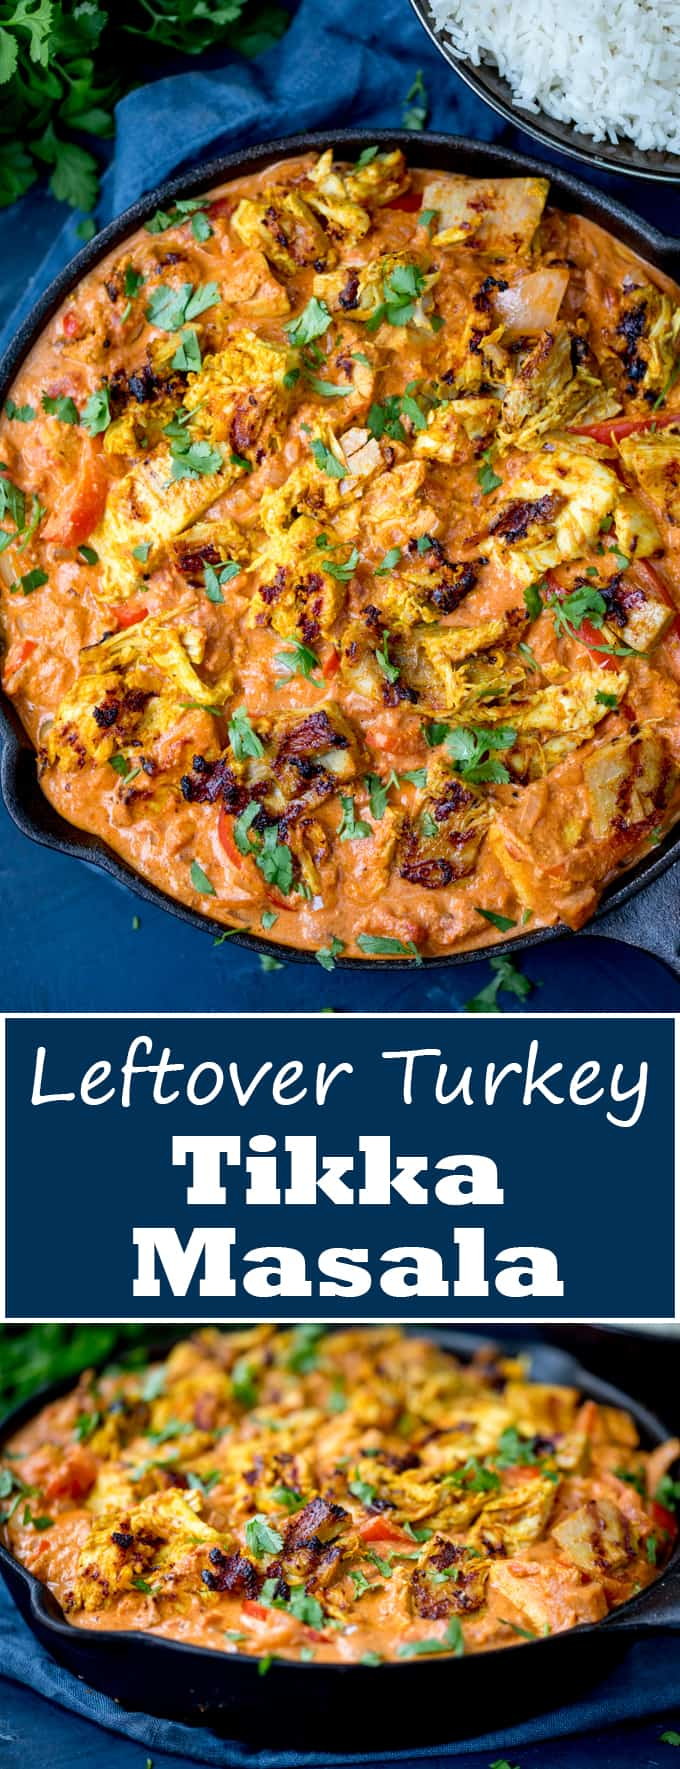 Use up that leftover turkey with this spicy-as-you-like Turkey Tikka Masala! Cream and delicious, it's on the kids and adults will enjoy. Gluten free too! #leftoverturkey #leftoverturkeyrecipe #glutenfreedinner #glutenfreecurry #boxingdaycurry